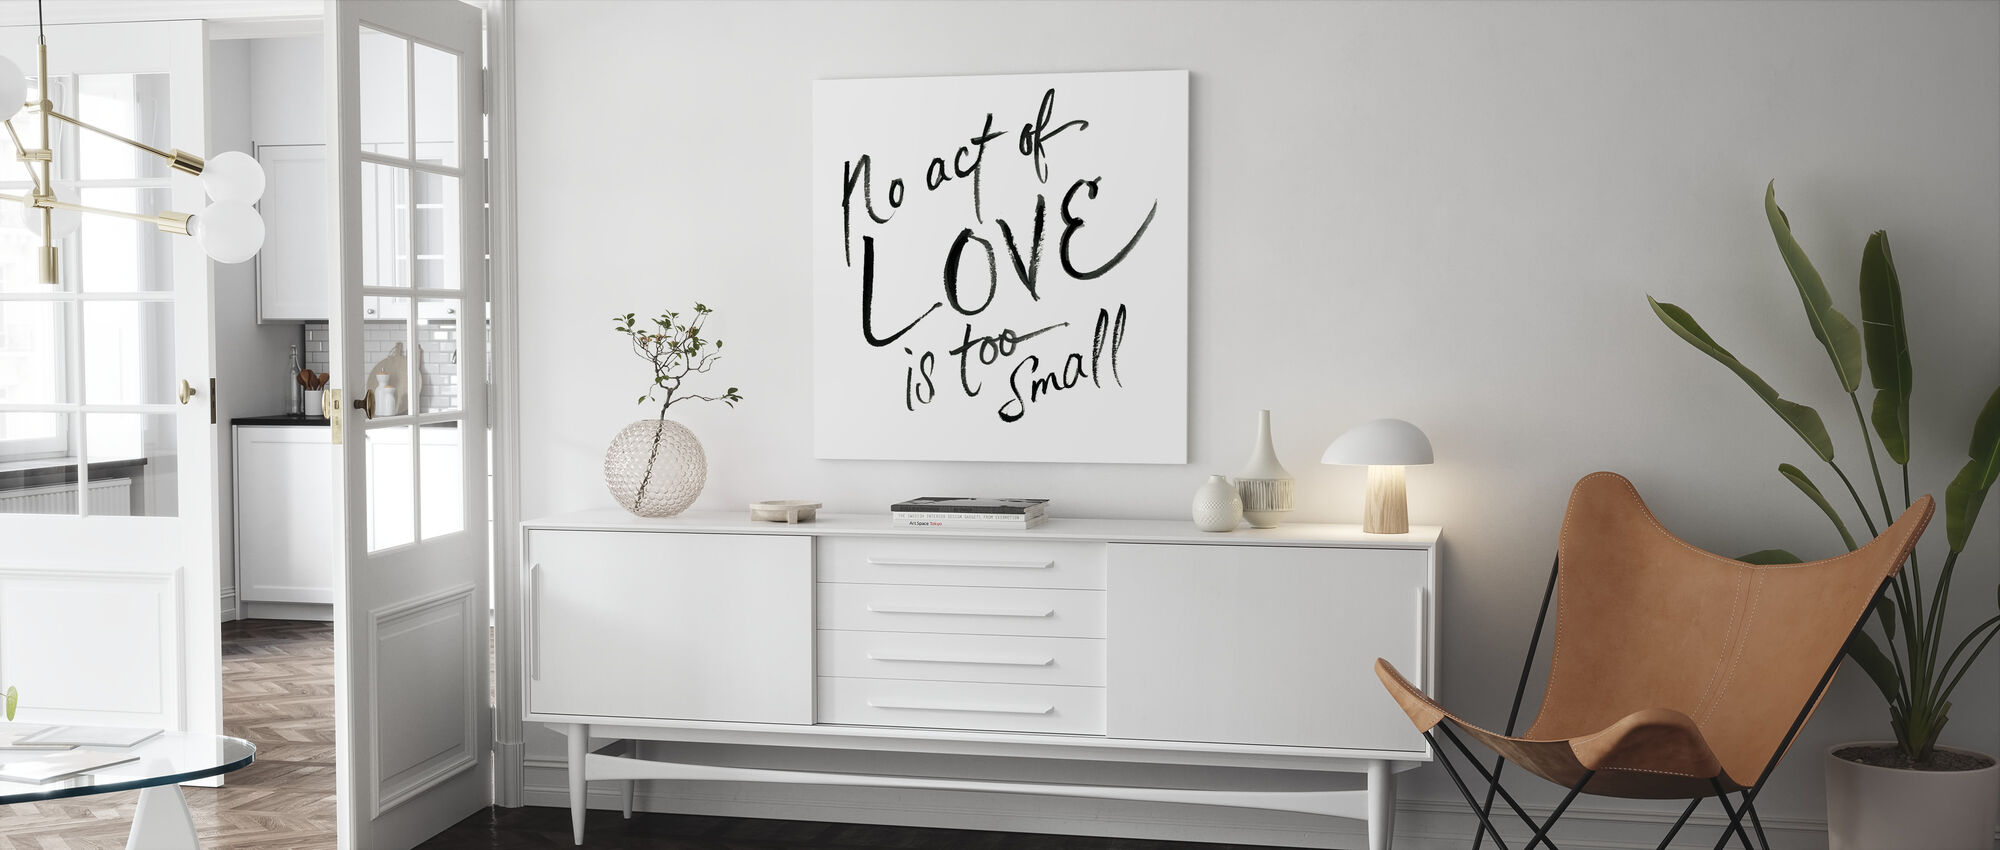 No Act Too Small - Canvas print - Living Room